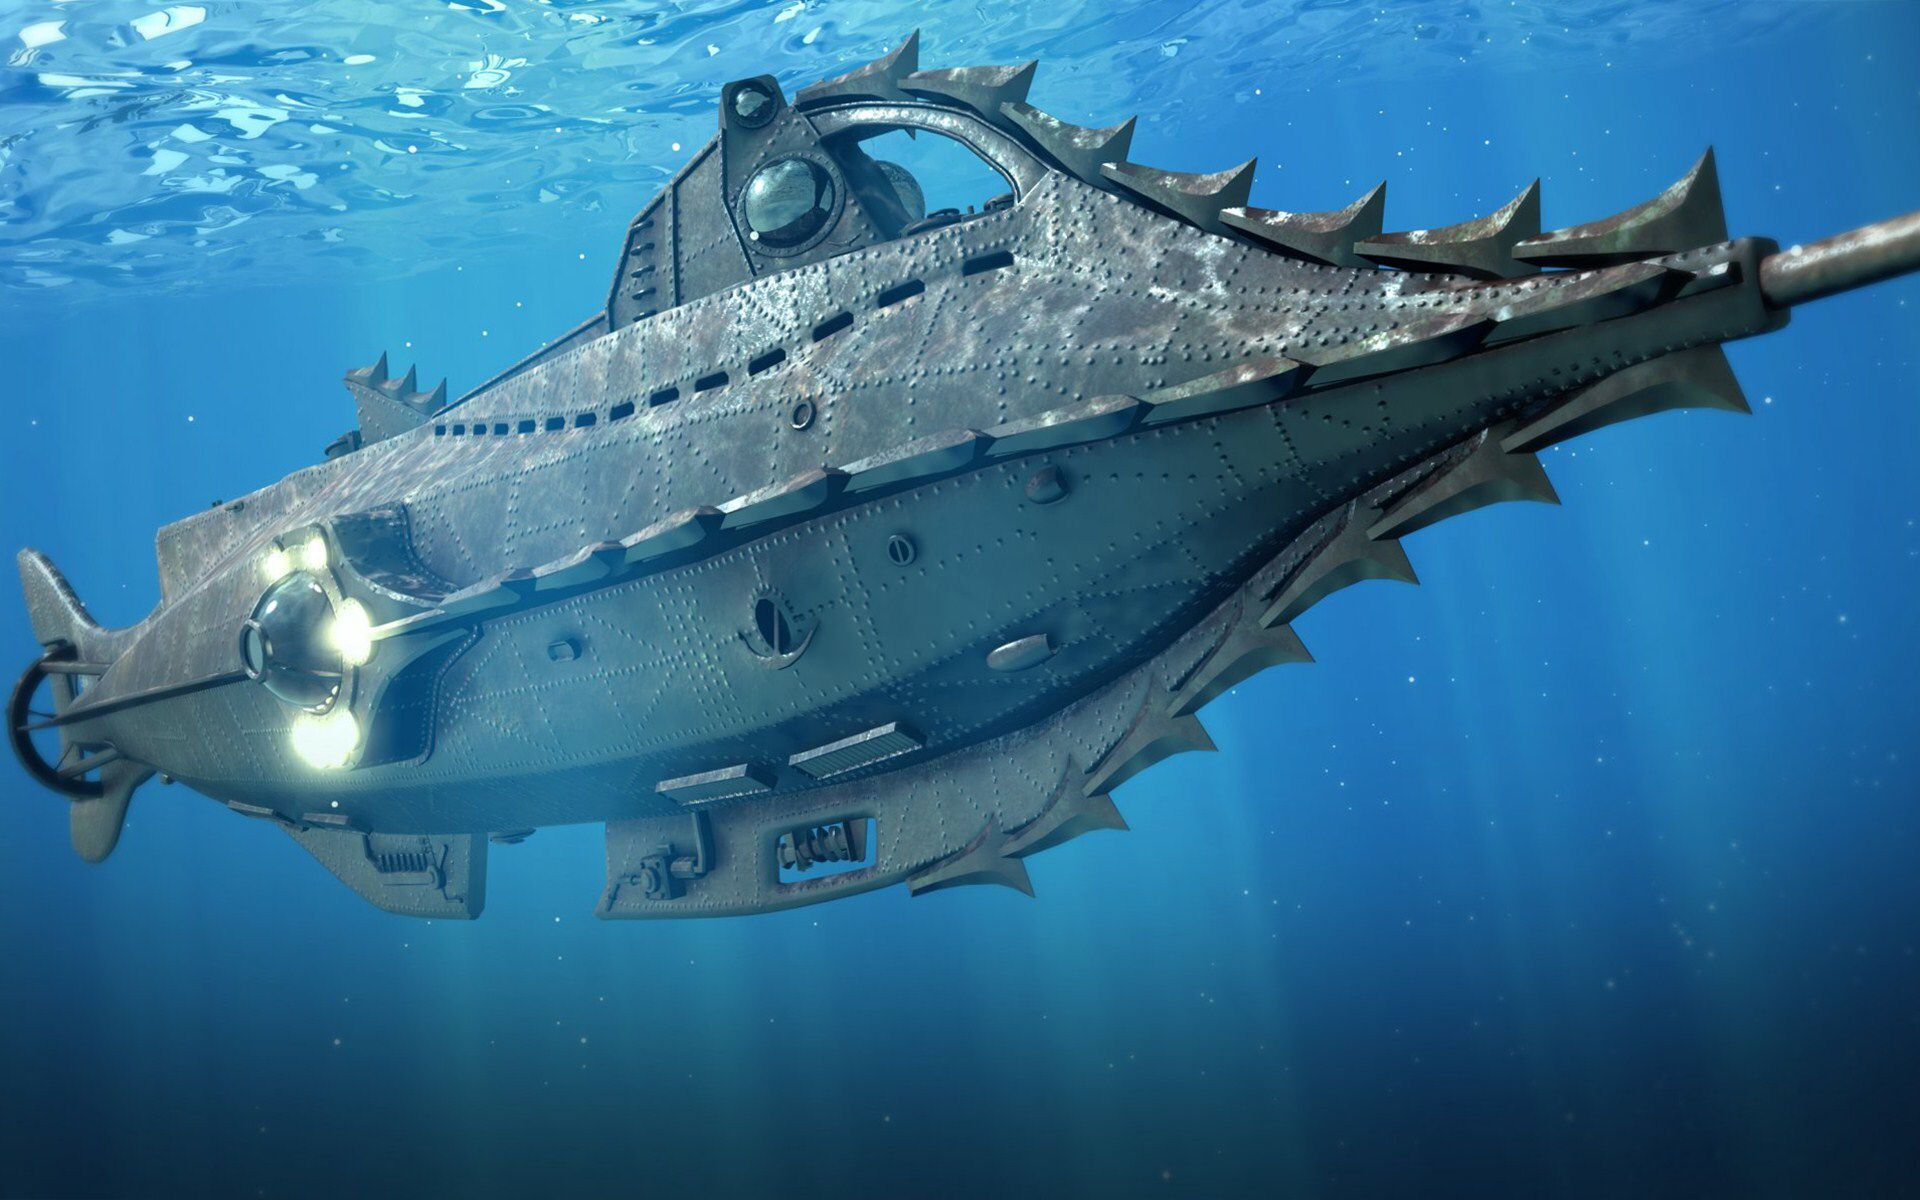 The Nautilus in 20,000 Leagues Under the Sea (1954)